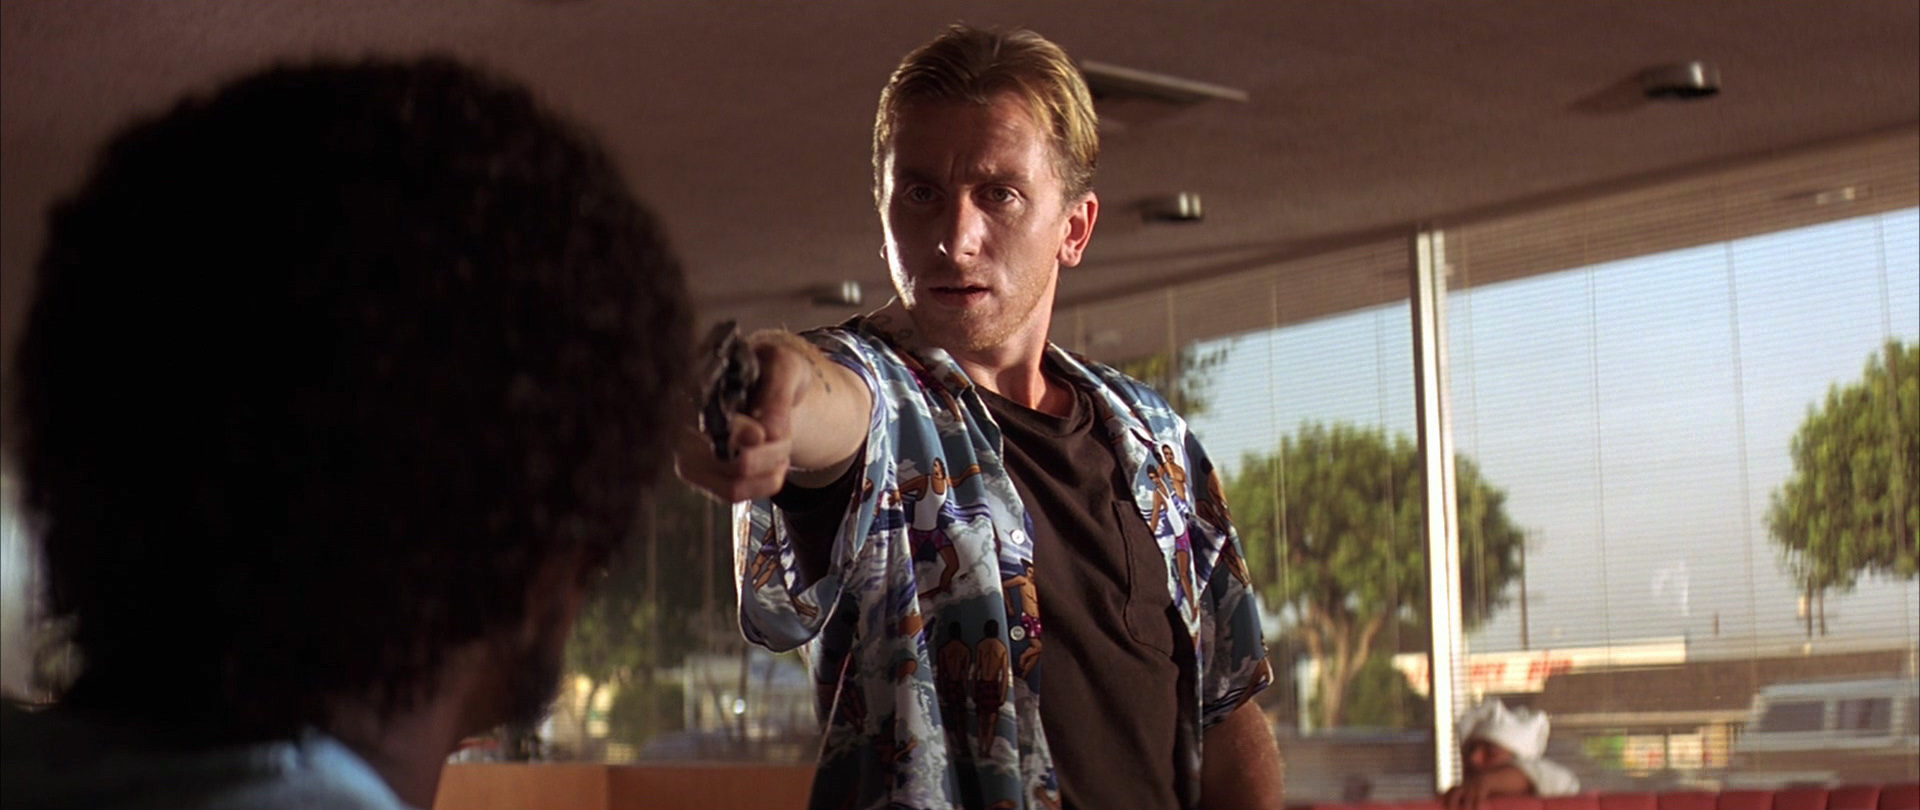 Tim Roth dans Pulp Fiction (1994)